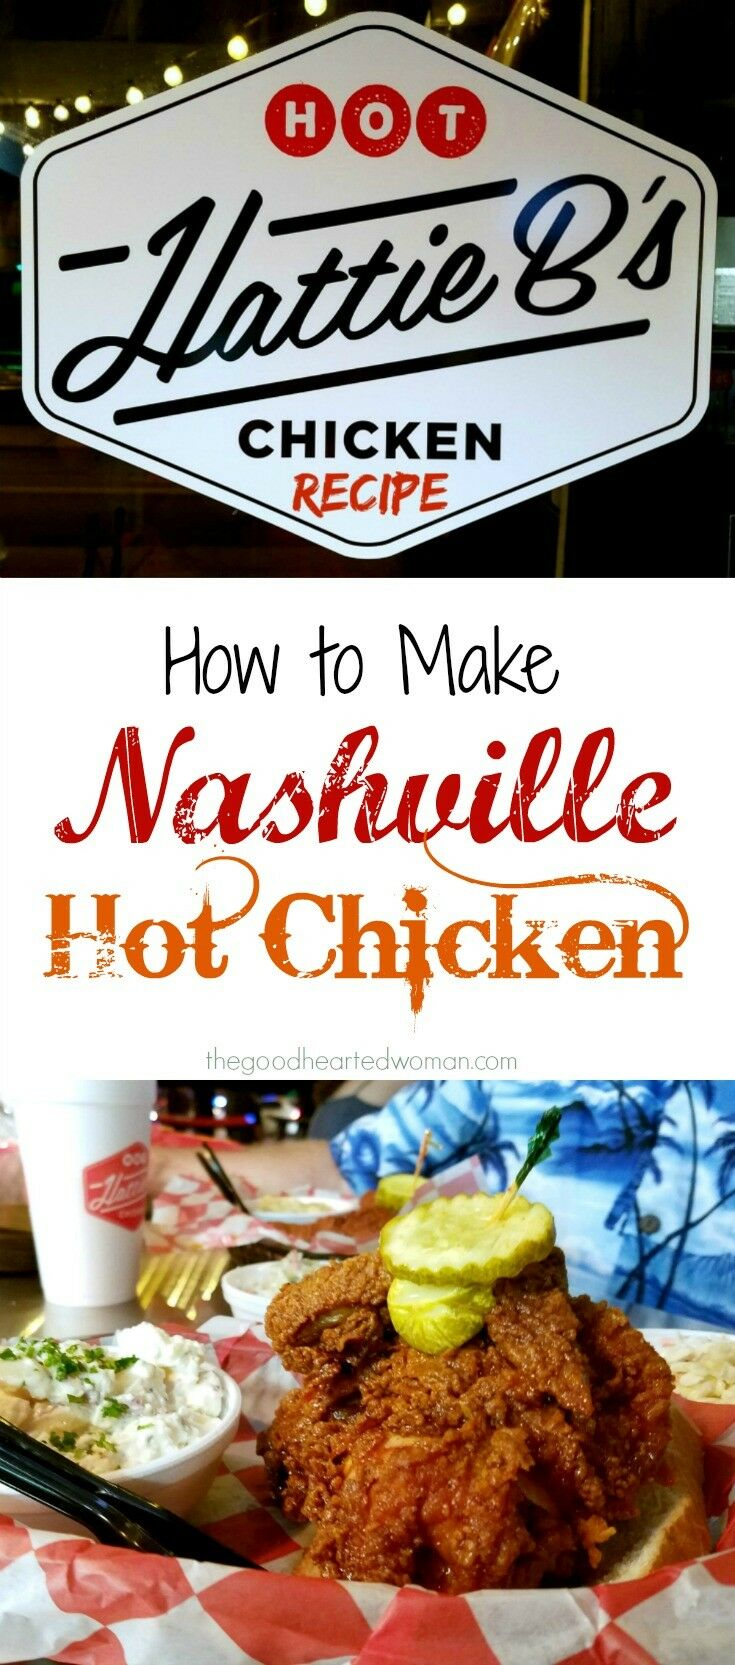 Hattie B's Nashville Hot Chicken {Recipe} | The Good Hearted Woman